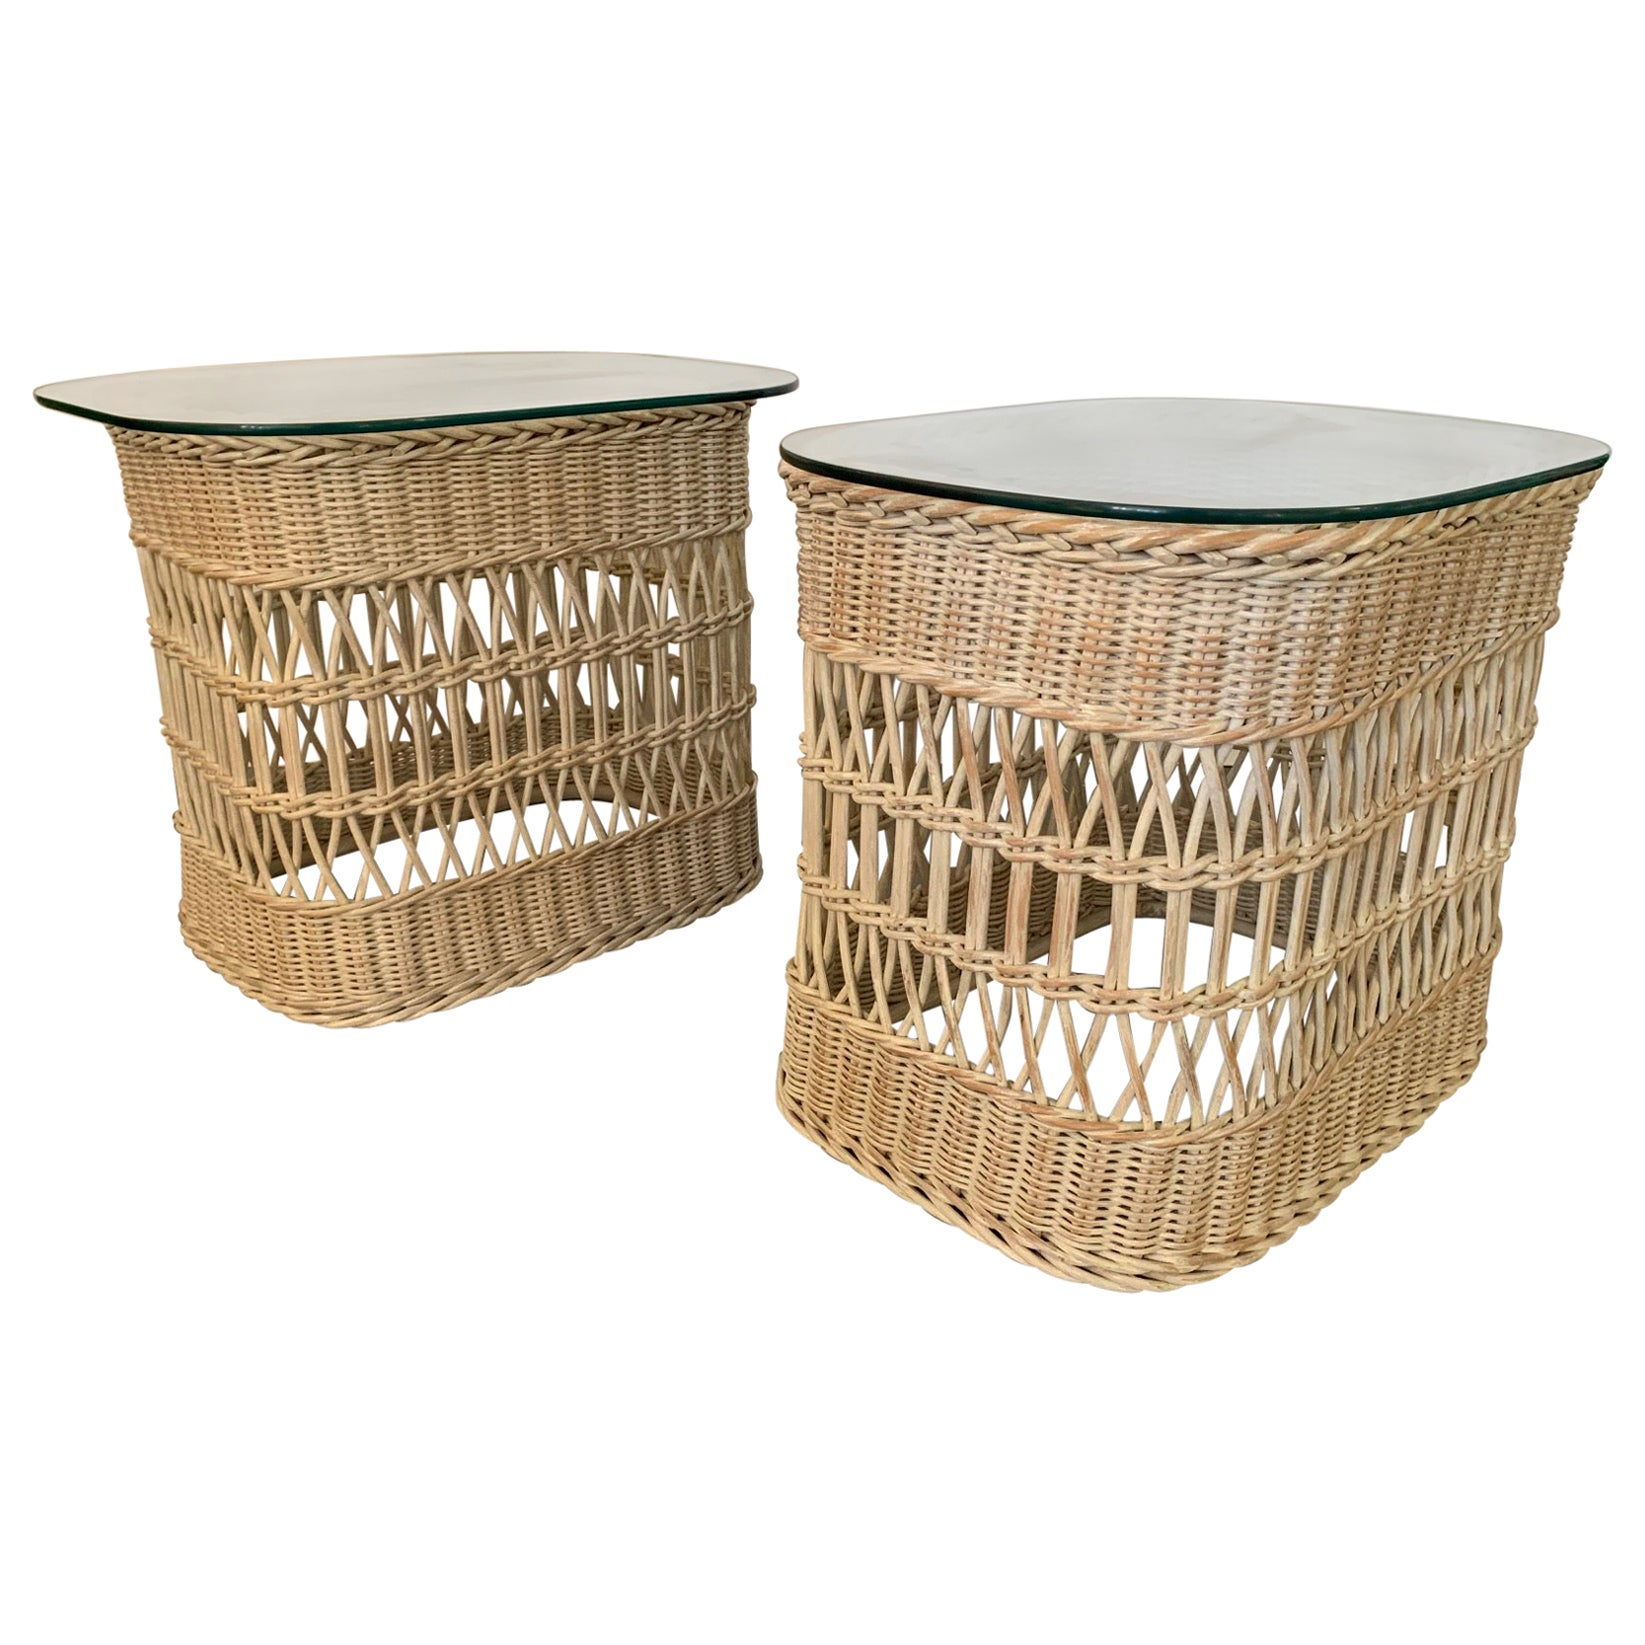 Woven Rattan and Wicker End Tables